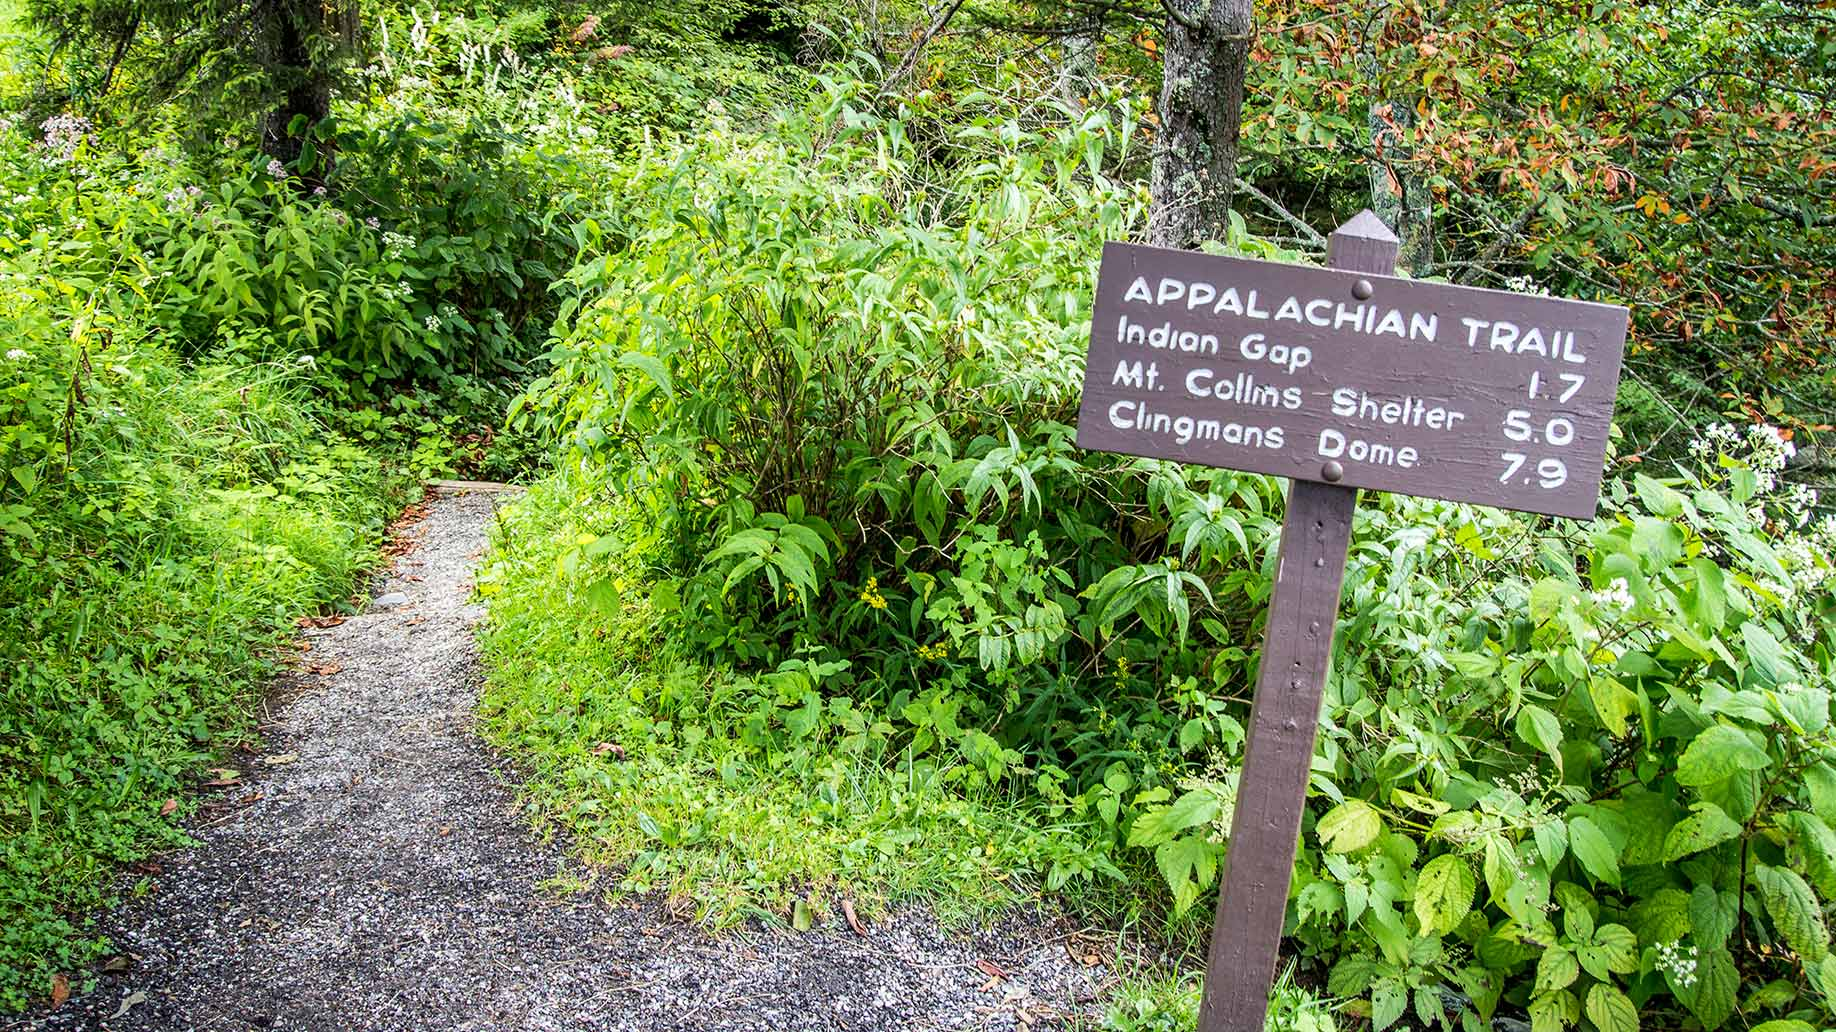 appalachian trail hiking sign